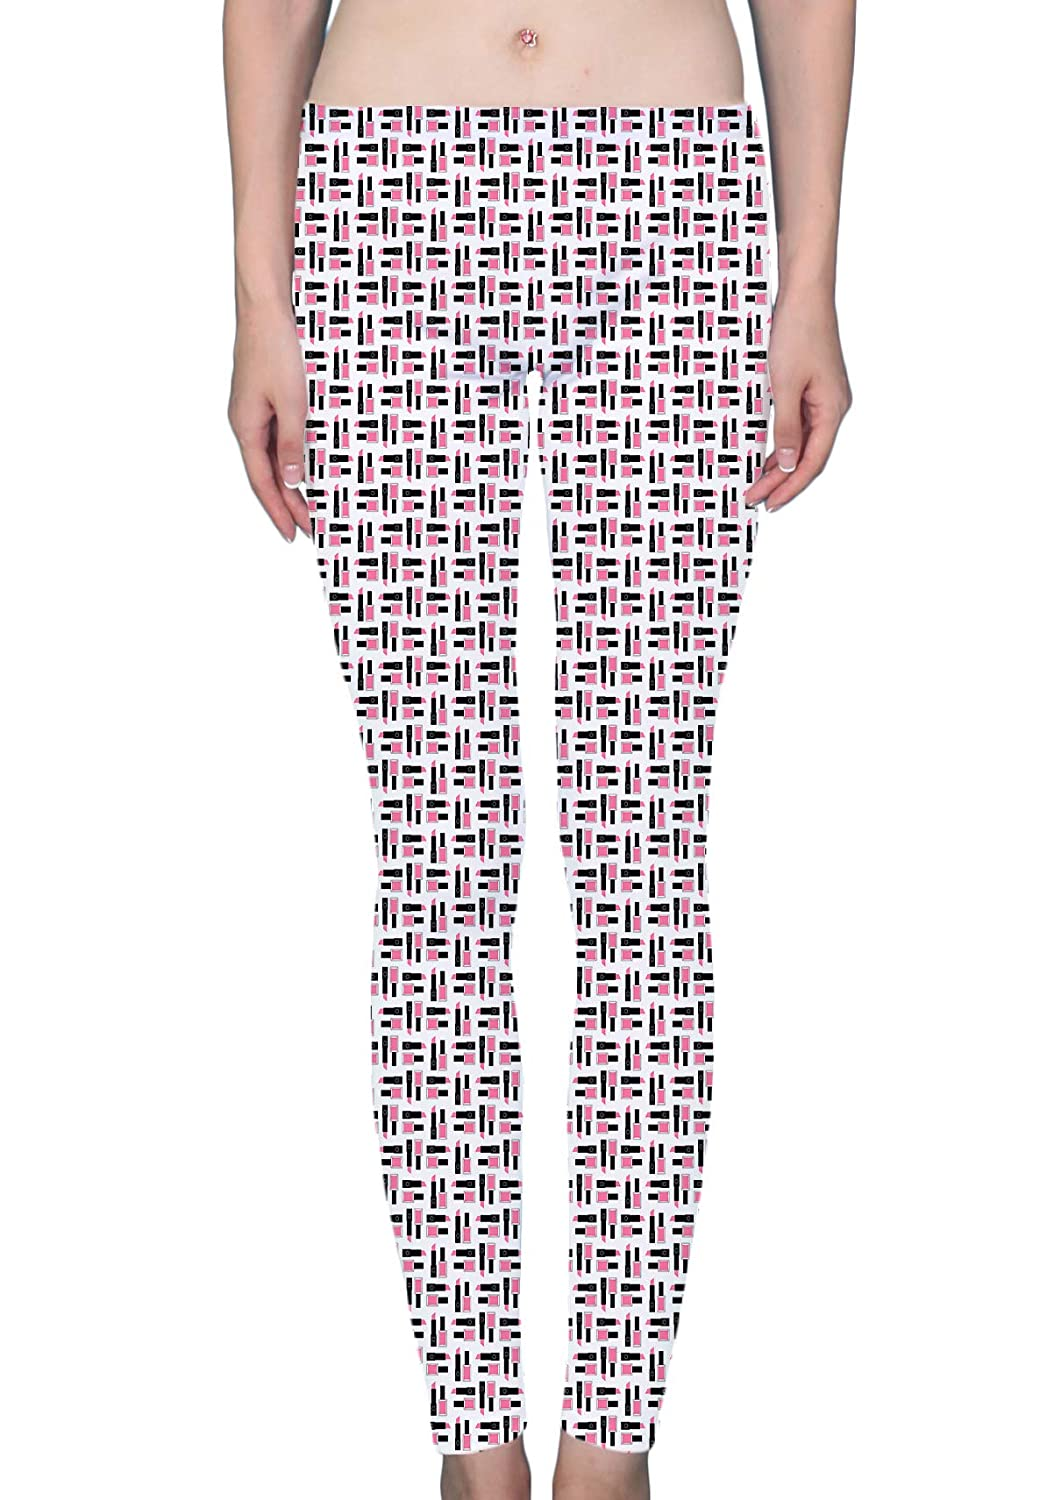 8b9b775c68d677 LuxSweet Cute Pink Lipstick and Nail Polish Women's Printed Leggings Soft  Stretchy Workout Yoga Pants Fashion Sports Pants at Amazon Women's Clothing  store: